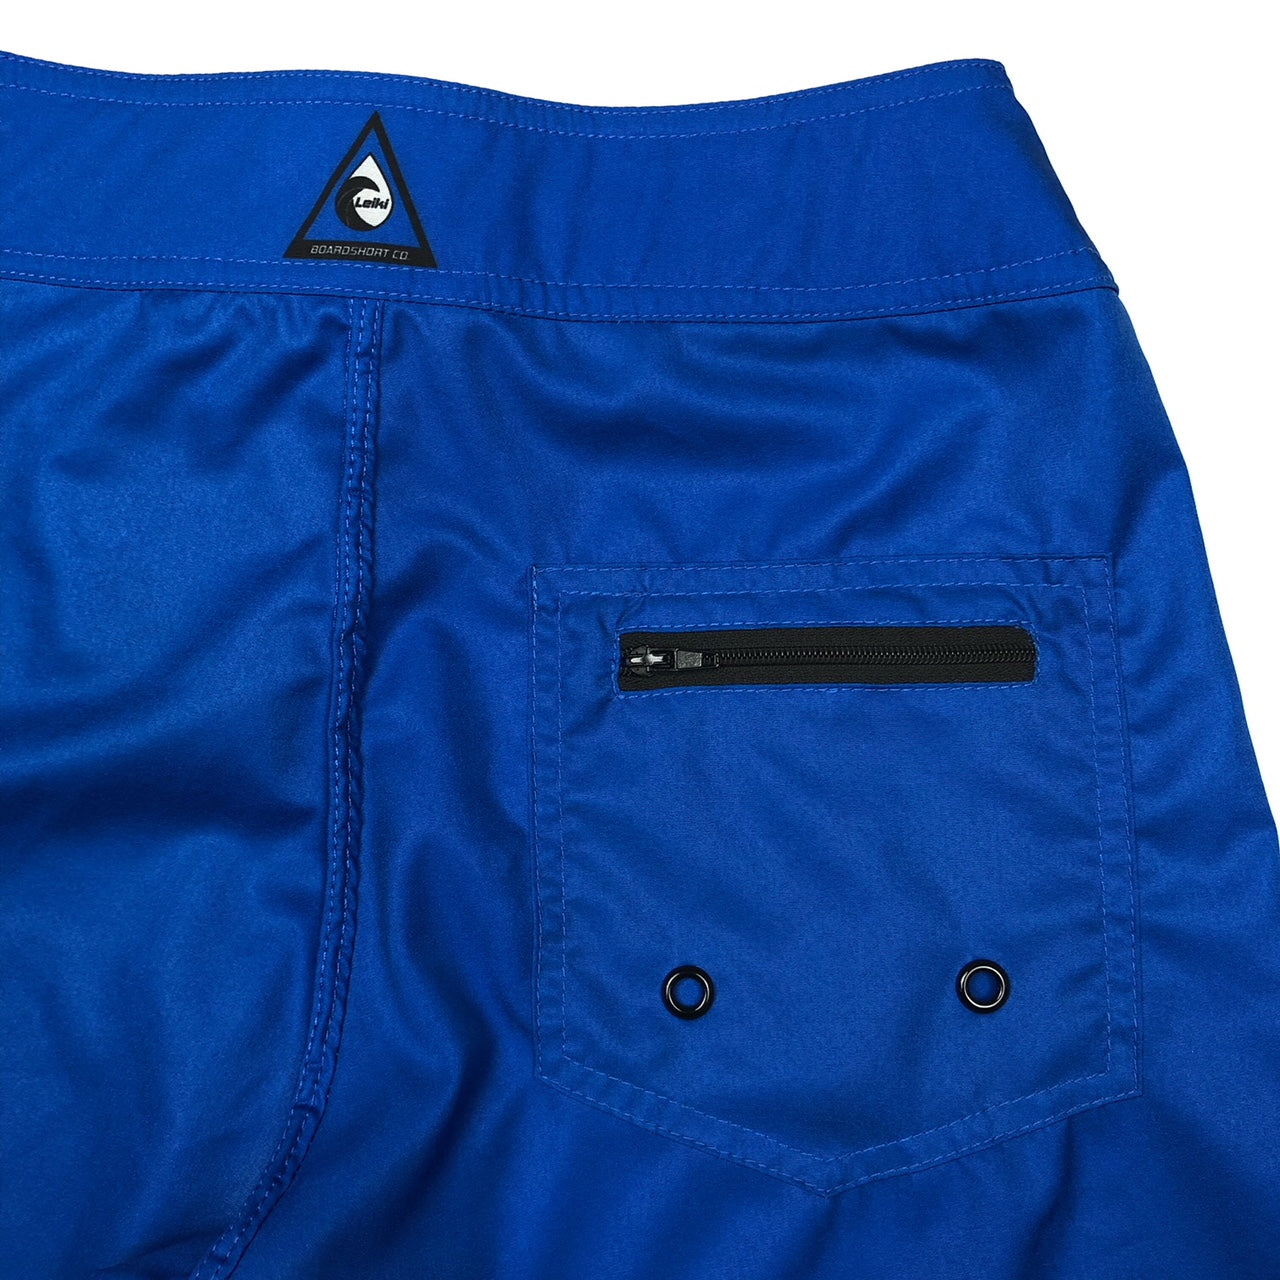 Seaways JR - Leiki Boardshort Co.